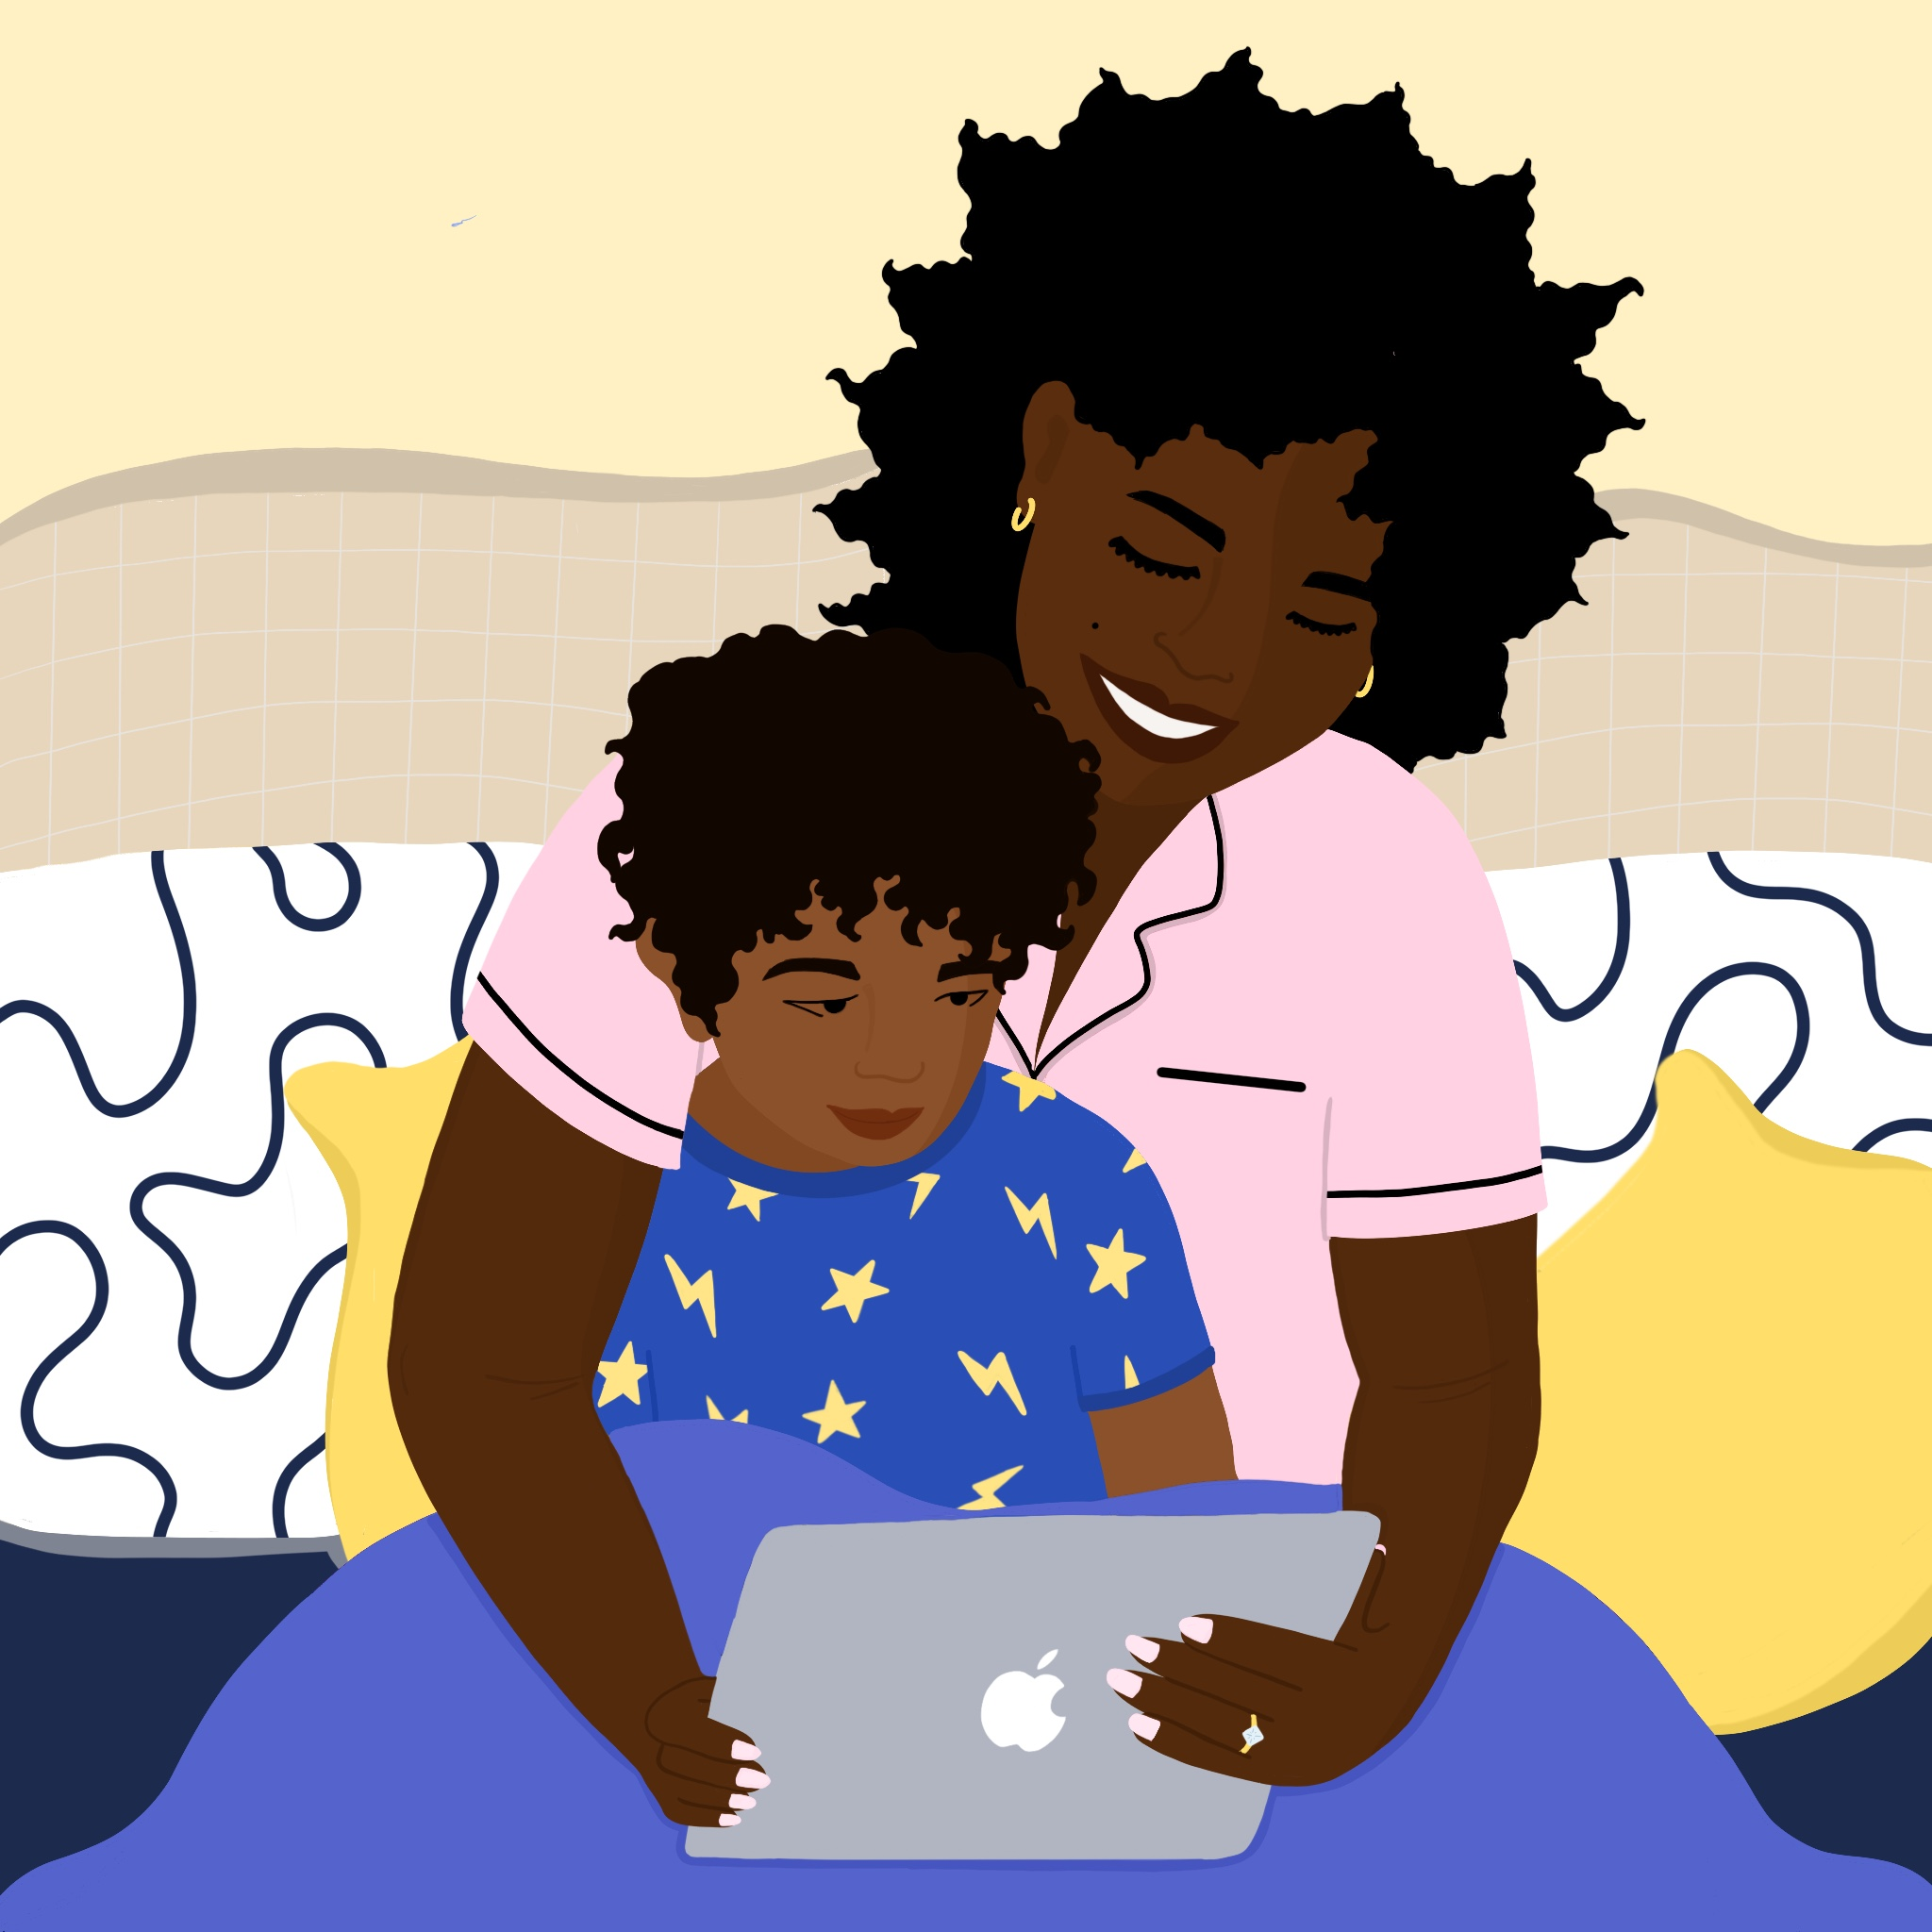 A Black woman reads to her child from a tablet on a bed.